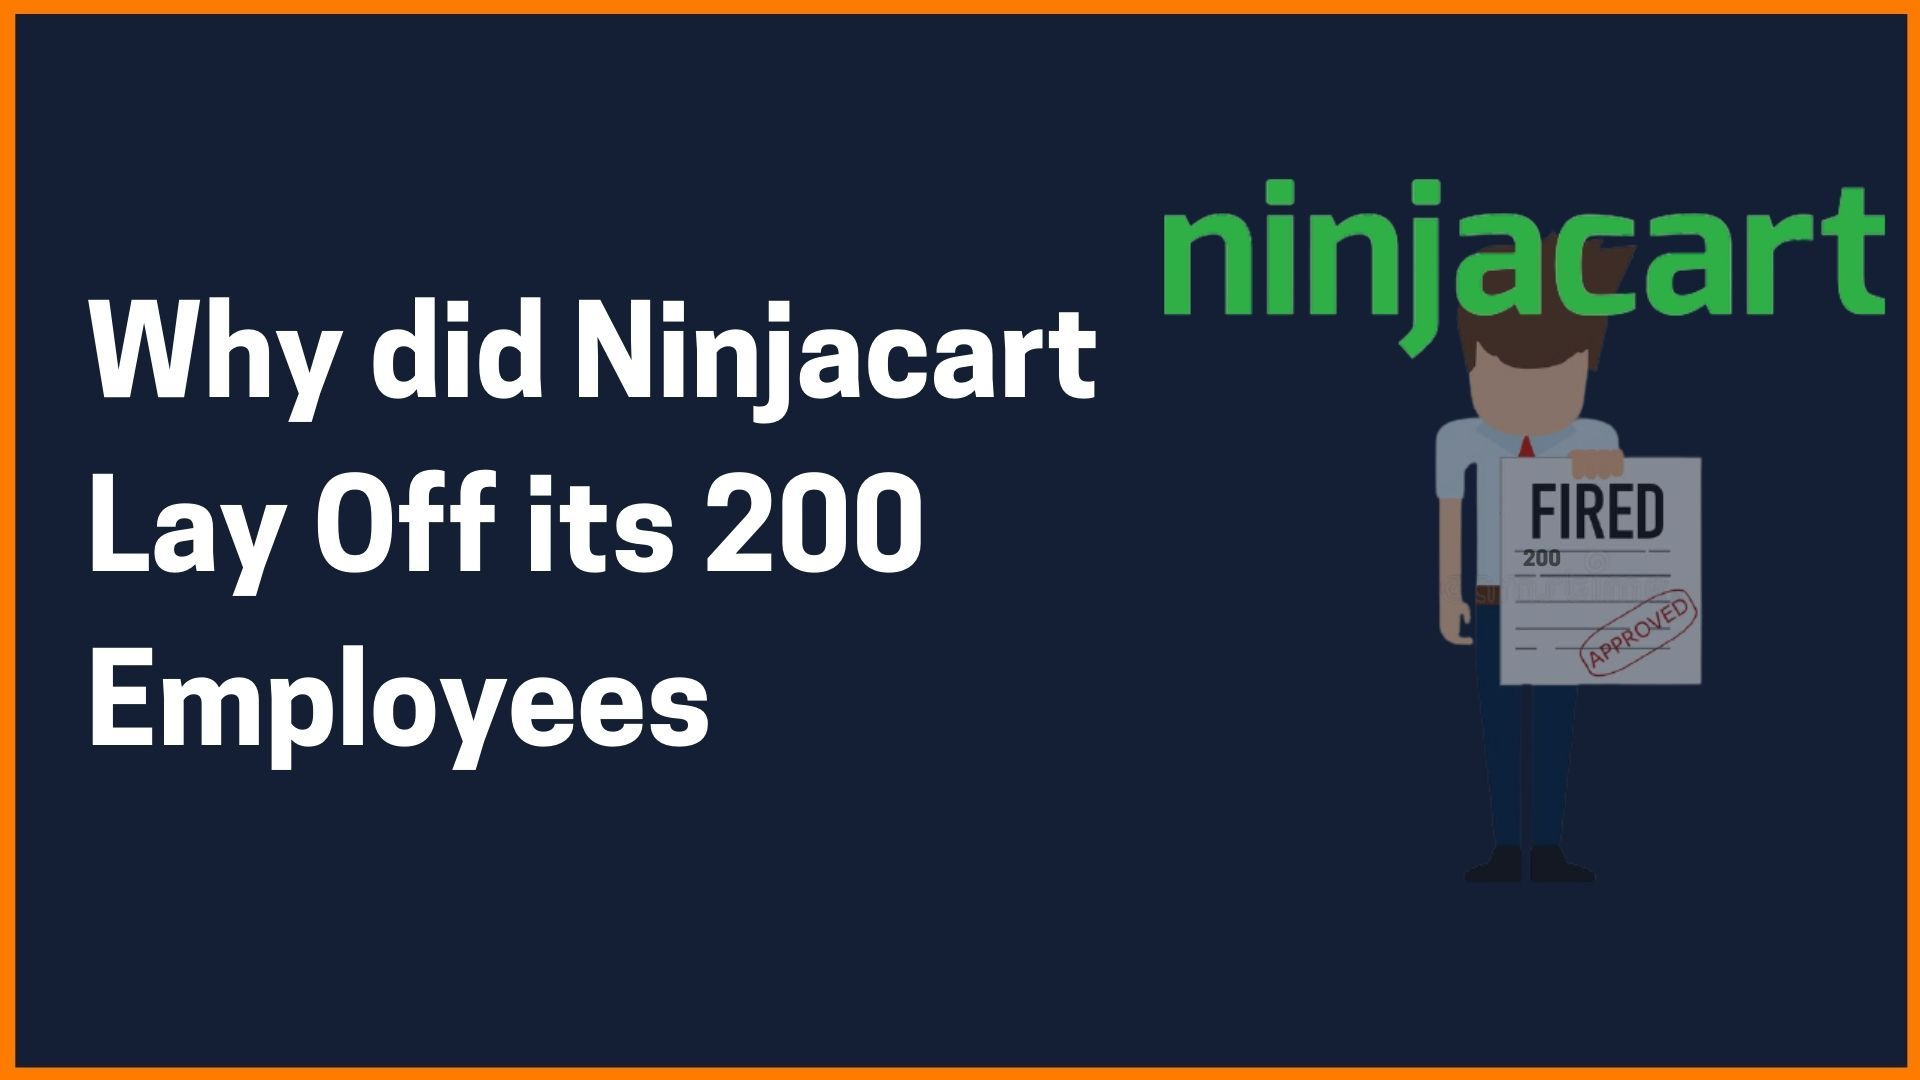 Why did Ninjacart Lay Off its 200 Employees Explained